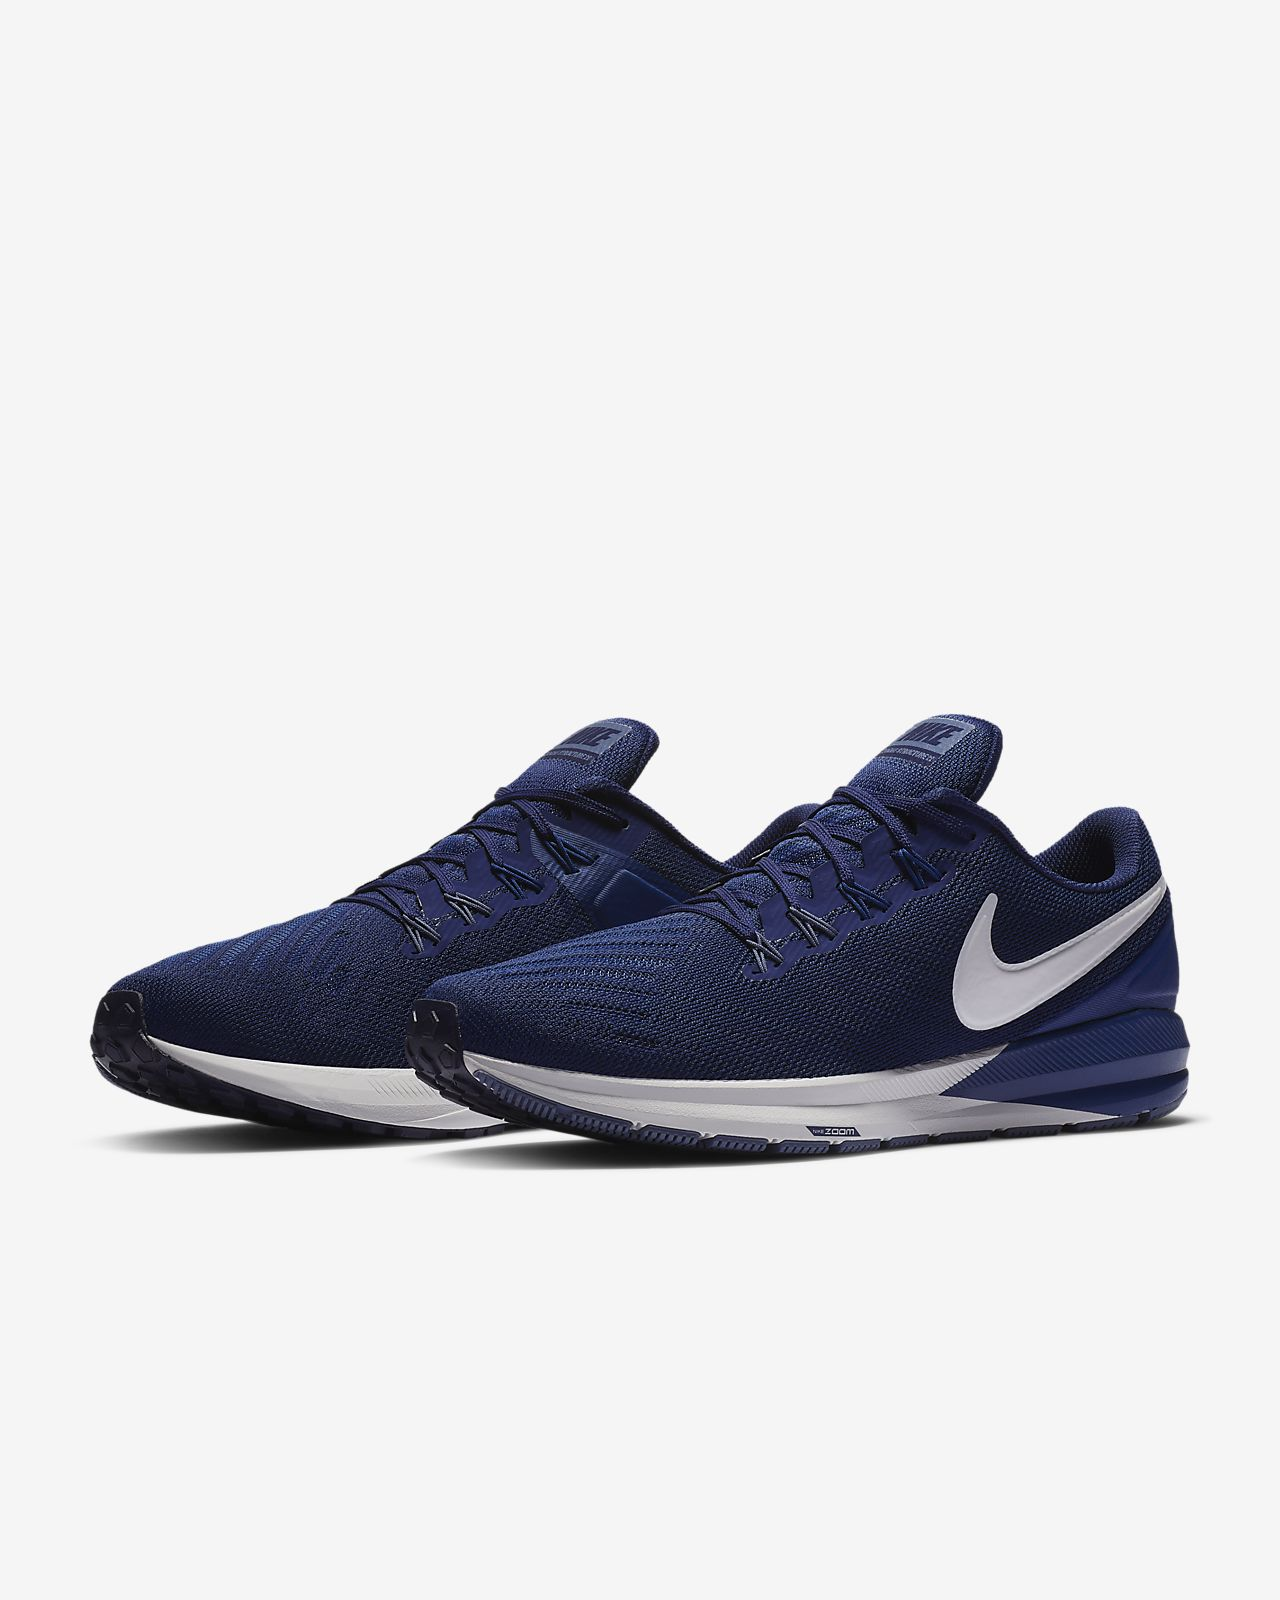 hot sale online 301ad 8178f Nike Air Zoom Structure 22 Men's Running Shoe